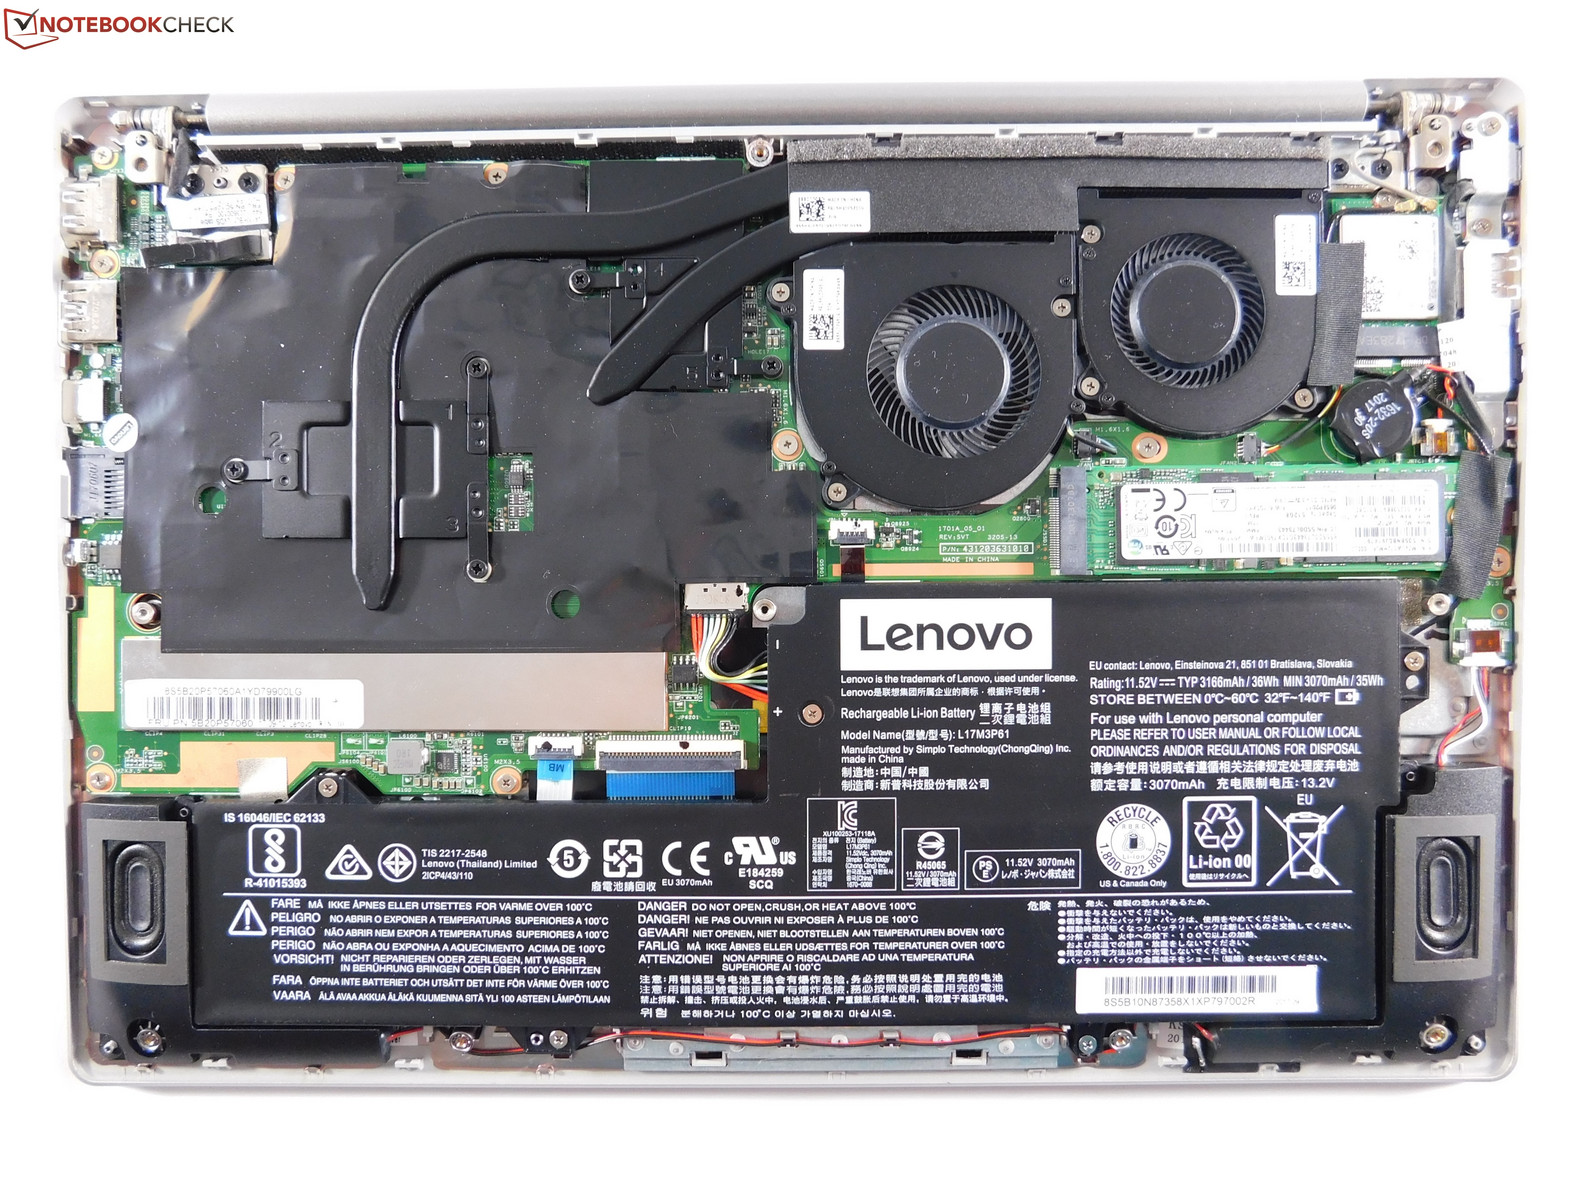 Lenovo IdeaPad 320S-13IKBR (i5-8250U, MX150) Laptop Review